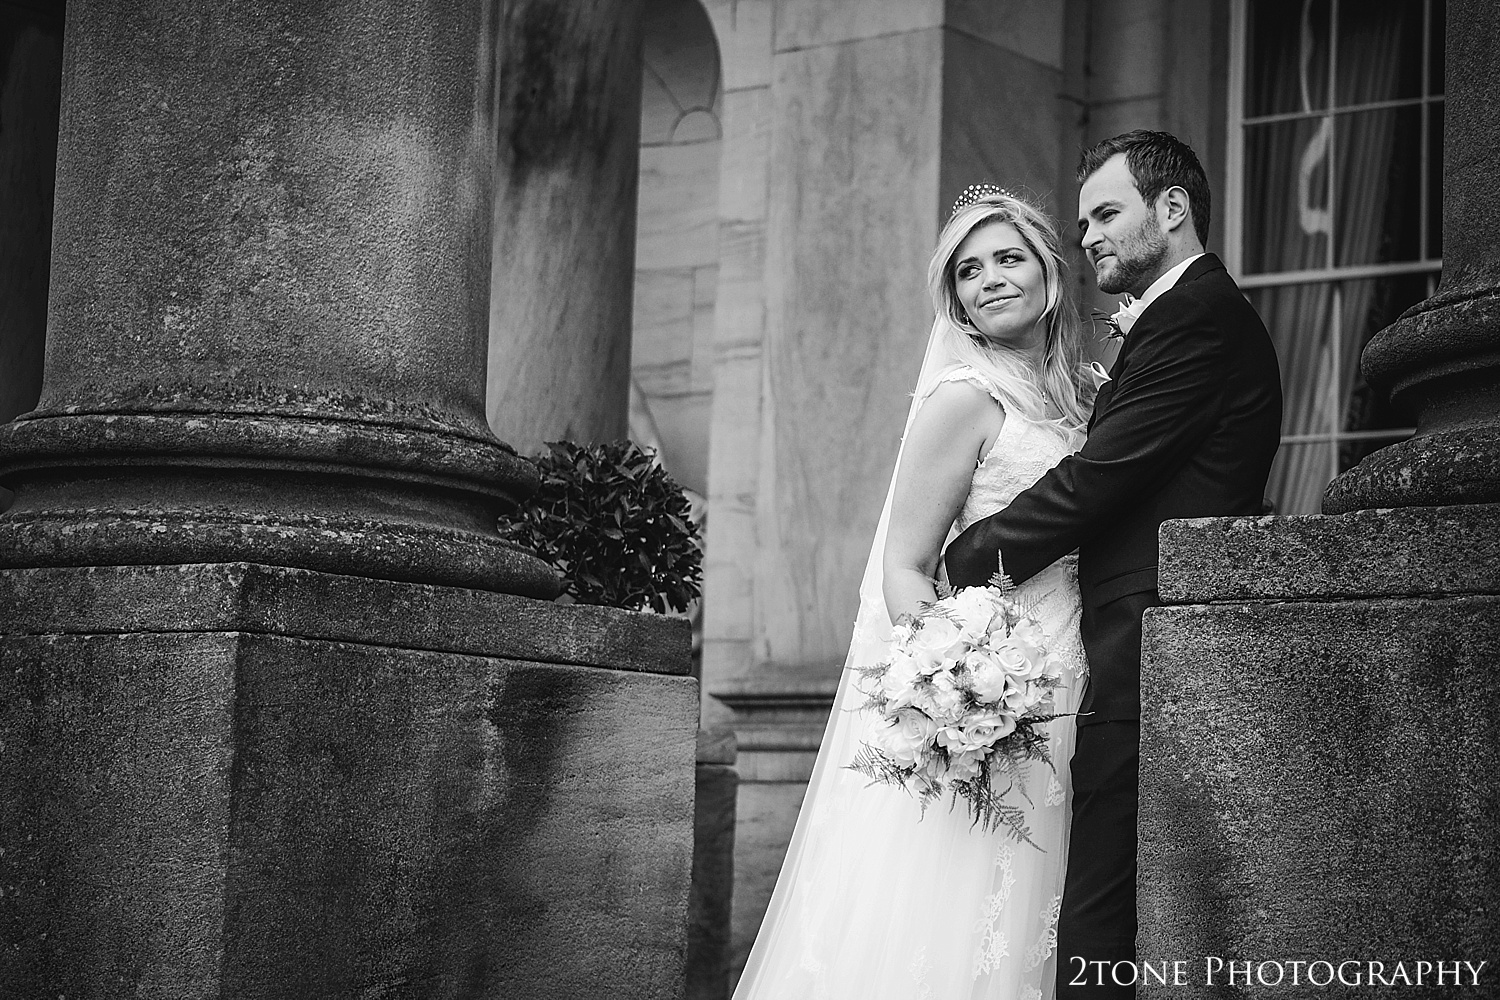 Weddings at Wynyard Hall.  Wynyard Hall wedding photography by www.2tonephotography.co.uk